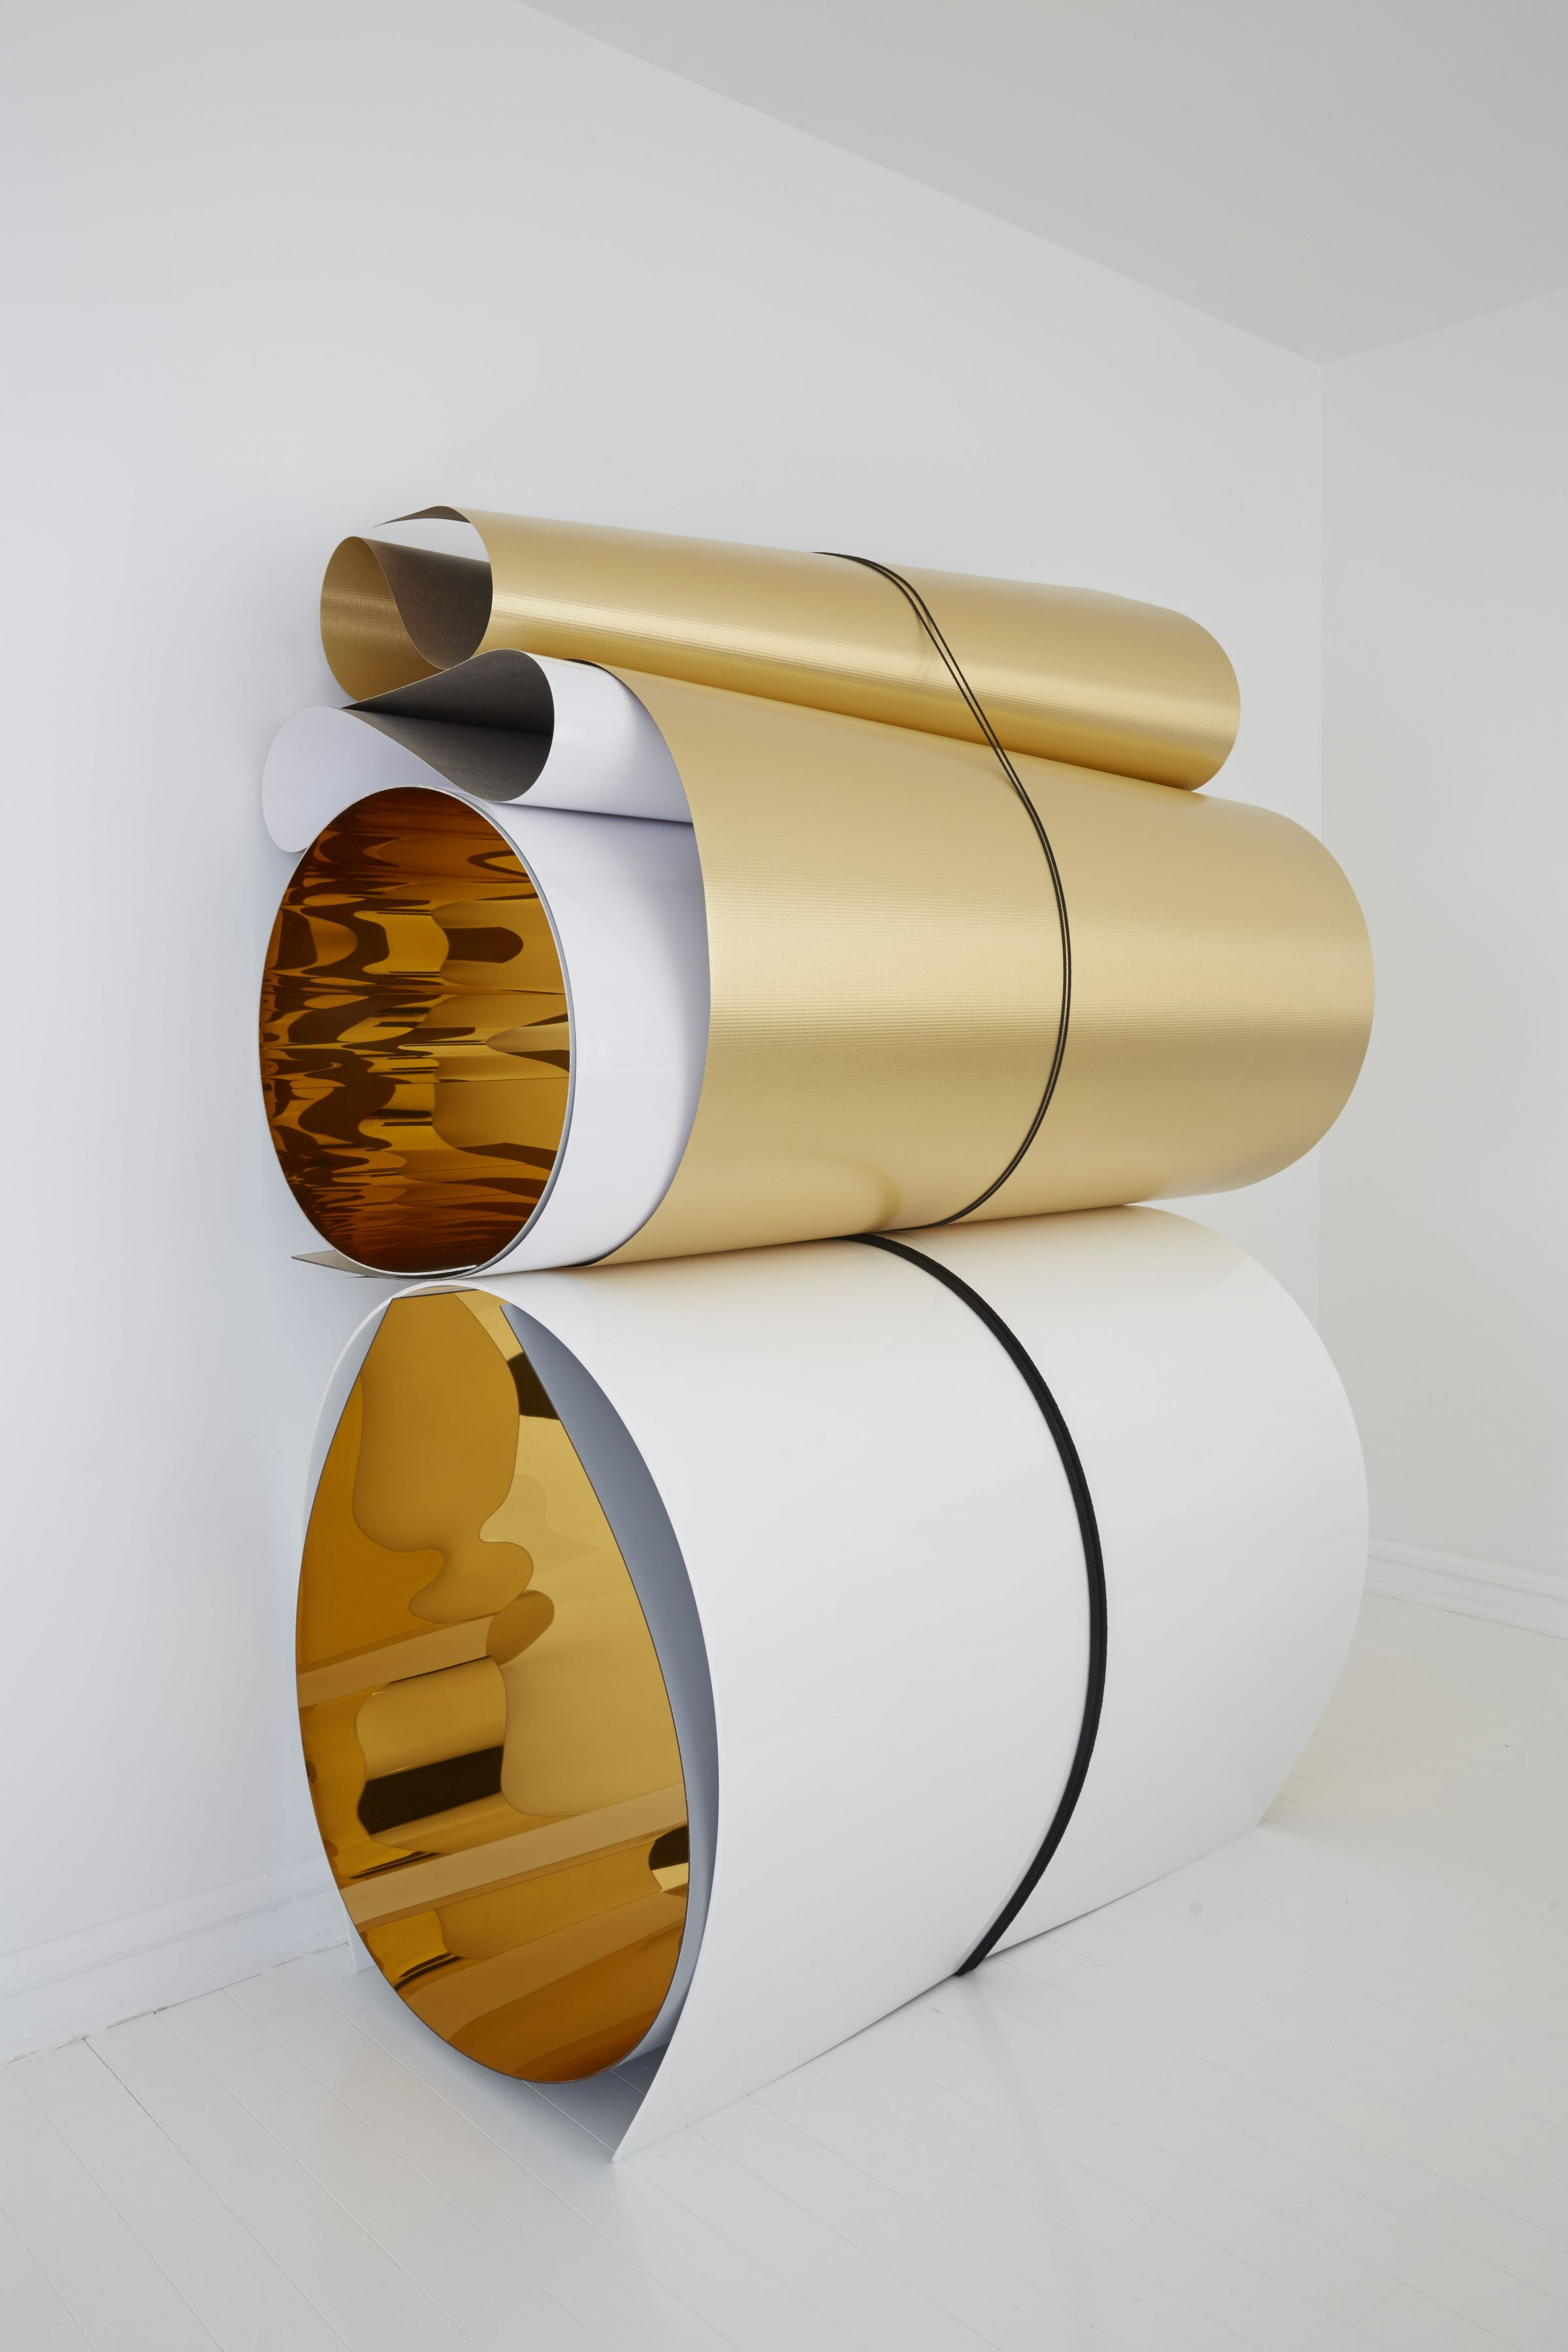 a sculpture of plexiglass and formica in rolls by Julia Dault